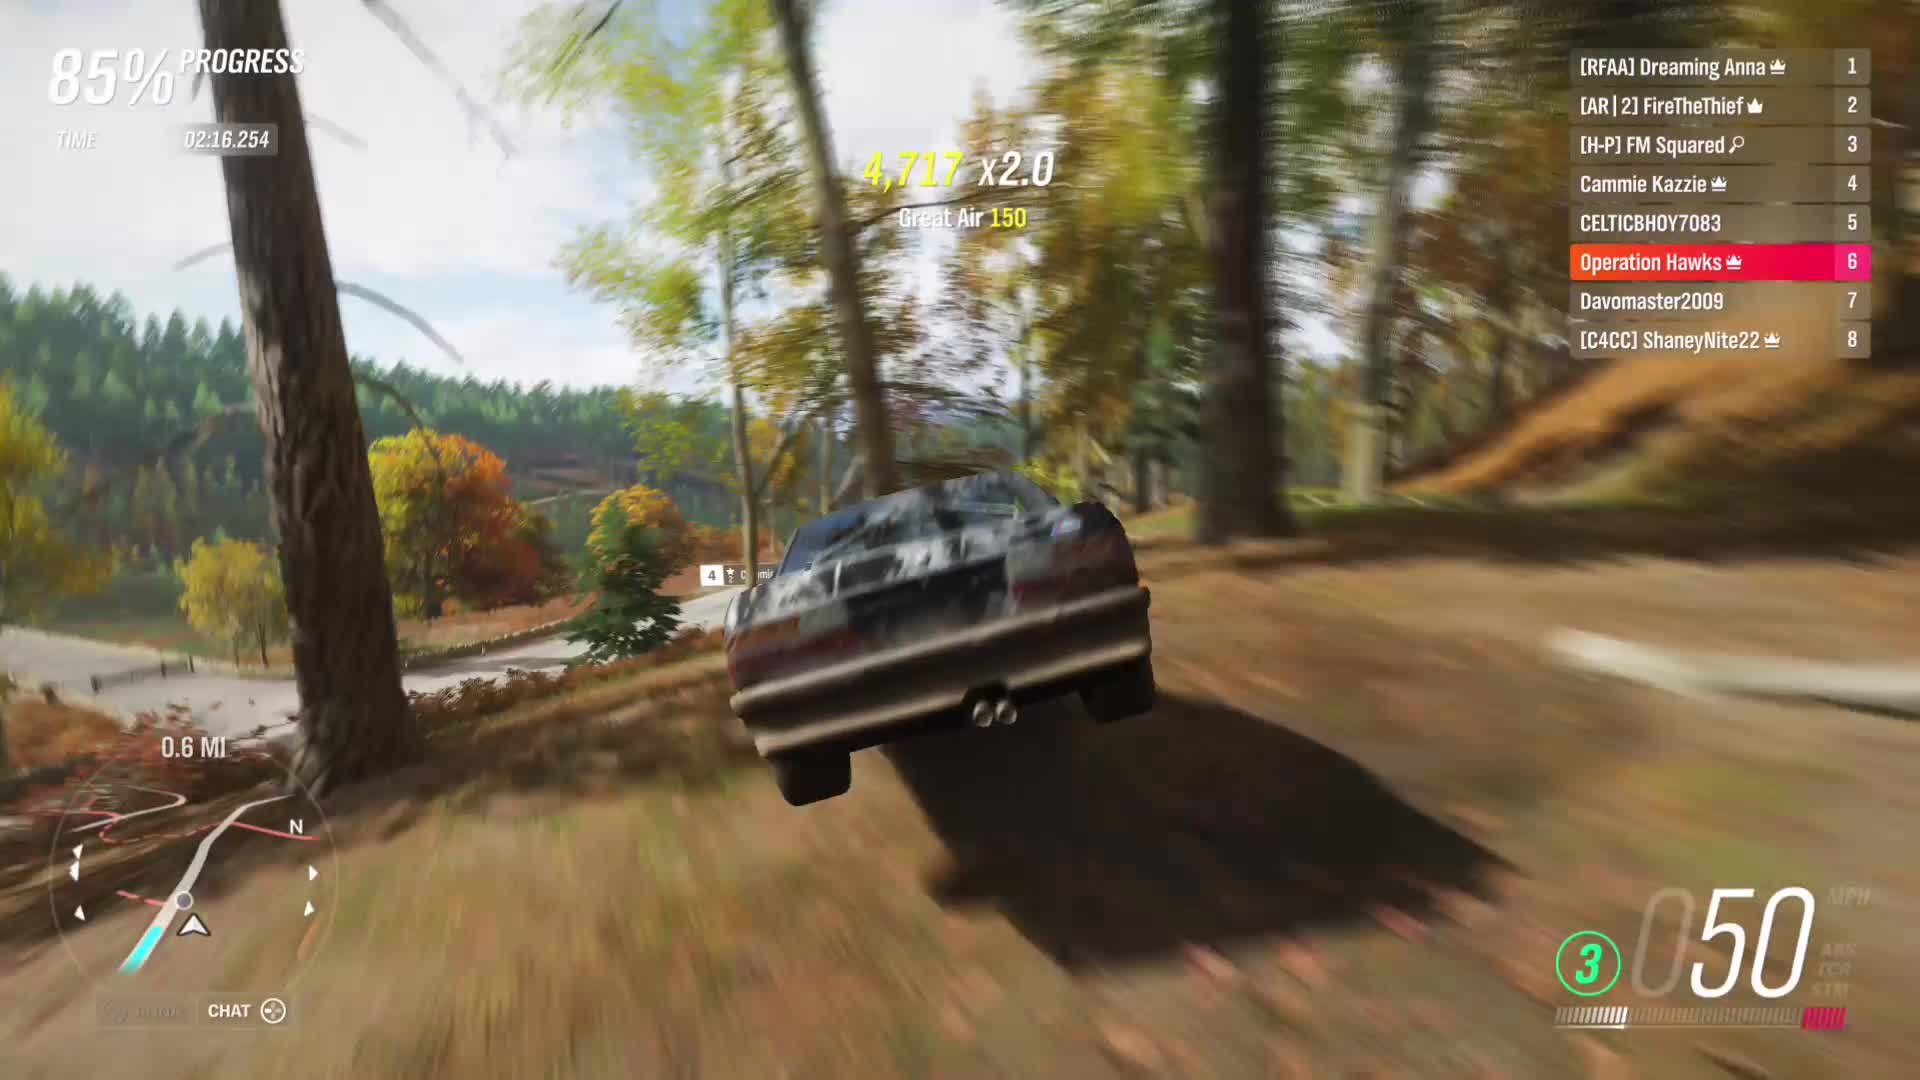 ForzaHorizon4, Operation Hawks, gamer dvr, xbox, xbox one, I did nothing wrong GIFs